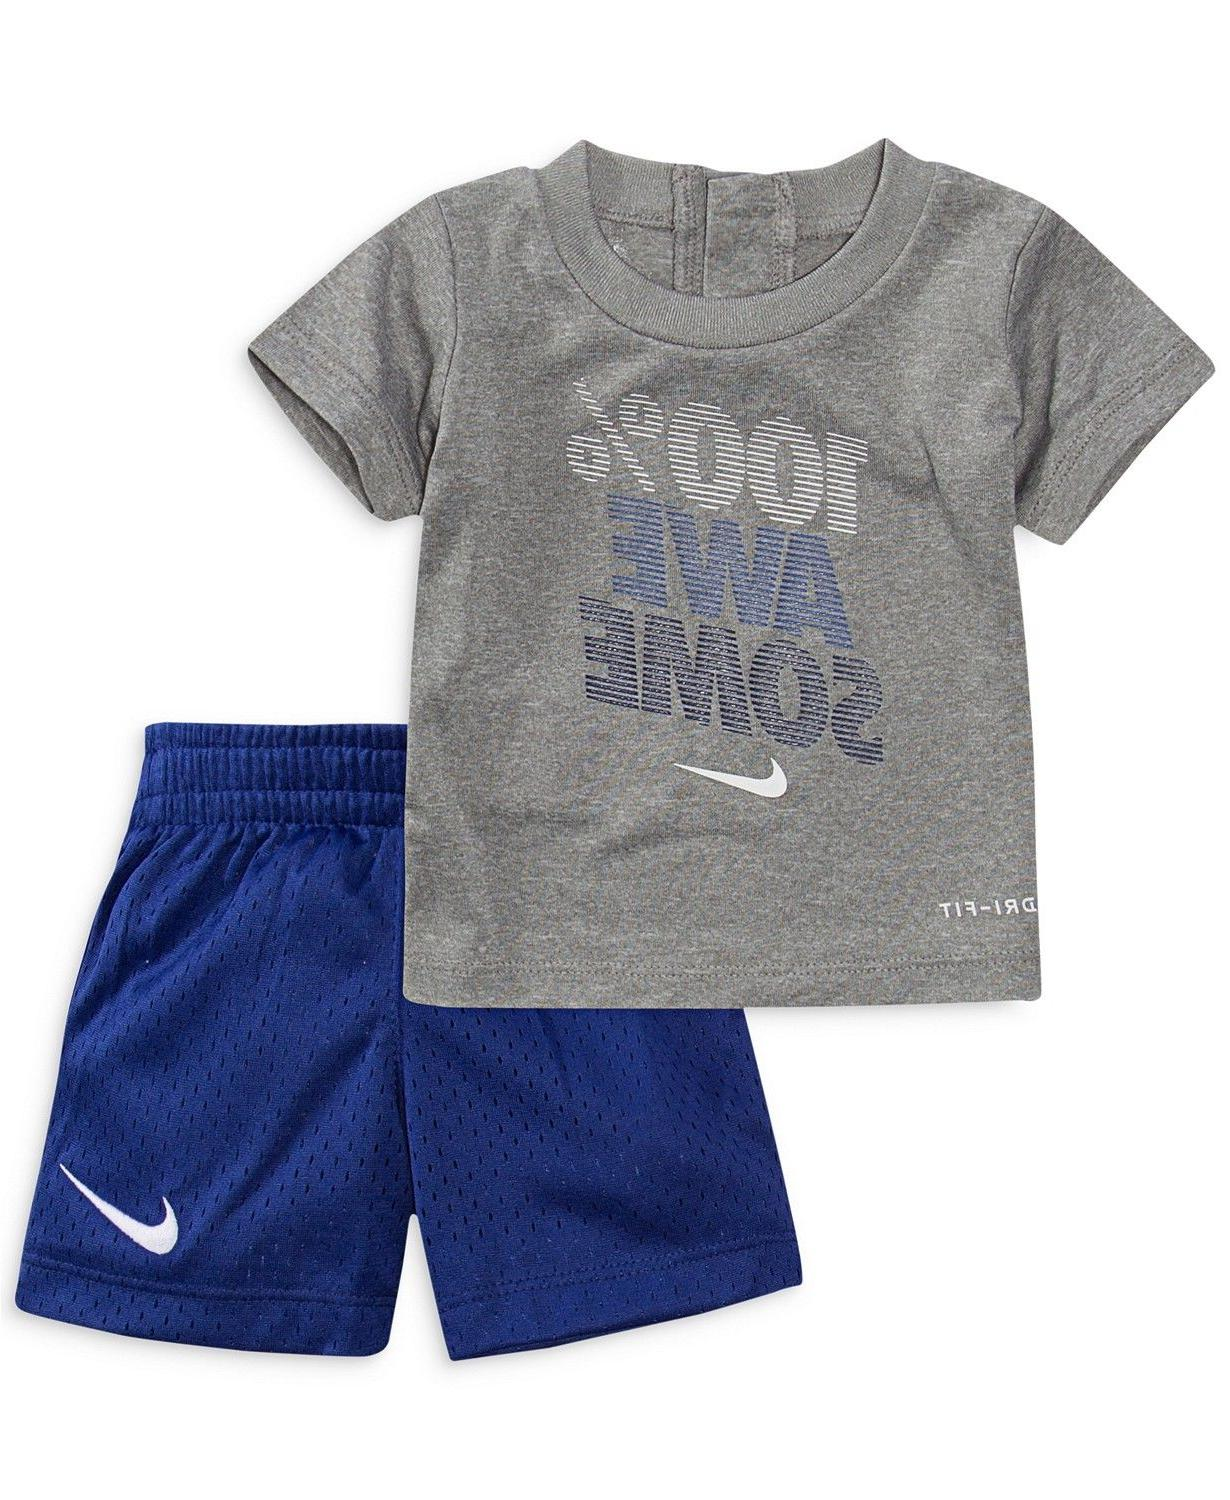 New Nike Graphic Shorts Set Size and Color